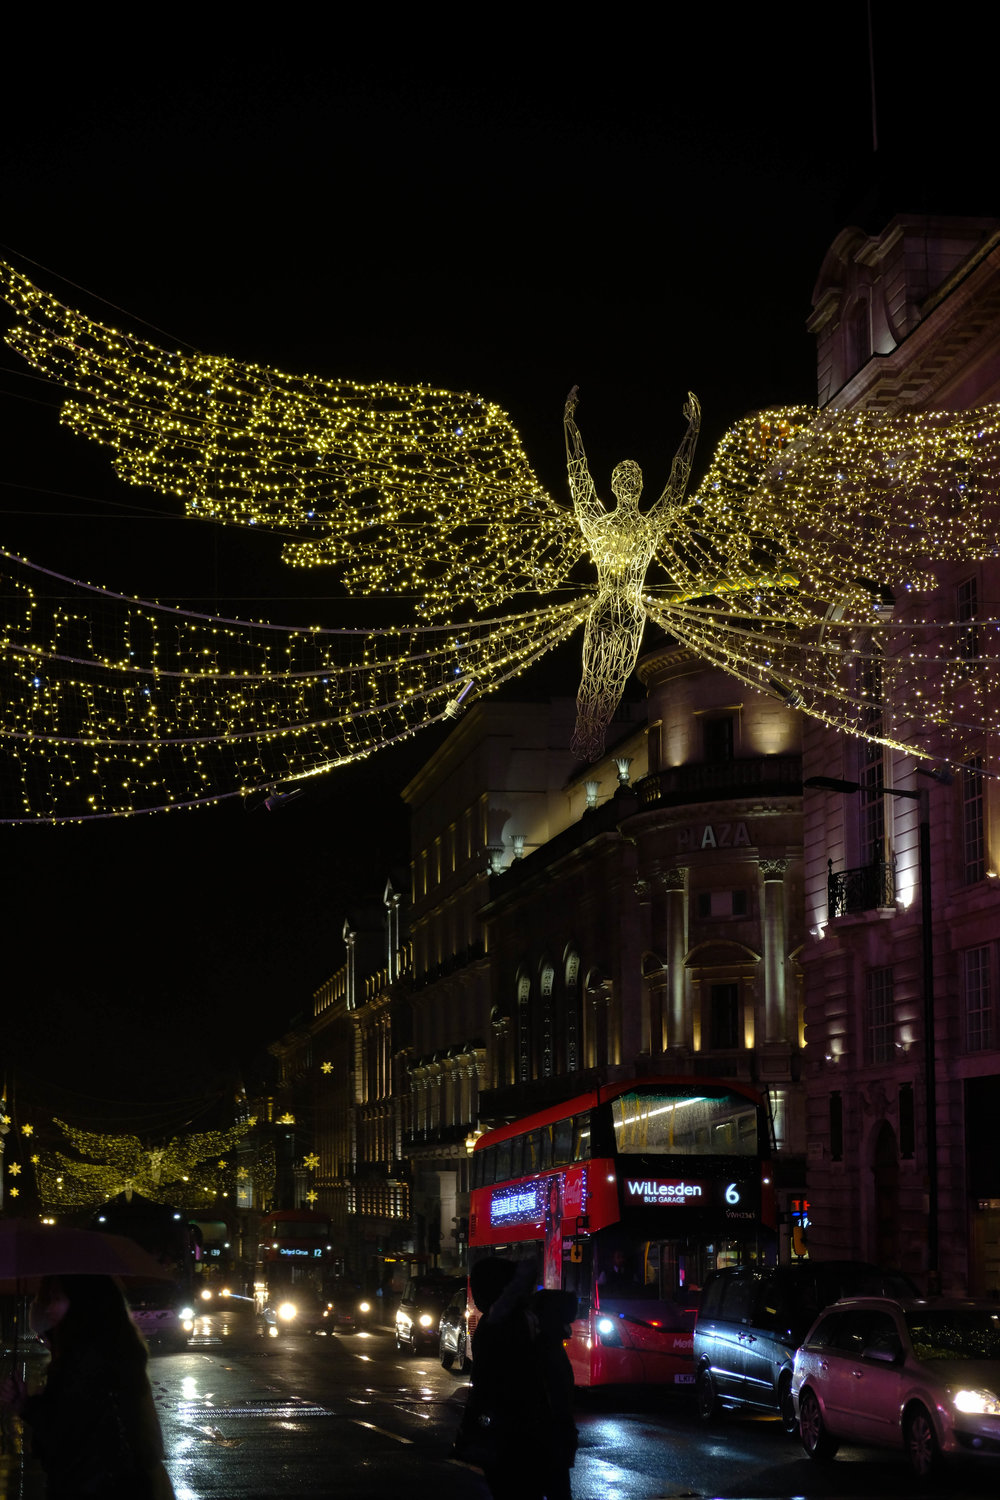 "<p style=""font-family:brandon-grotesque;font-weight:500; font-size:11px; text-center:left; color:light grey;letter-spacing: 1px"">DECEMBER 25, 2017 • ANGELS UP ABOVE • 📍 London, UK</p>"